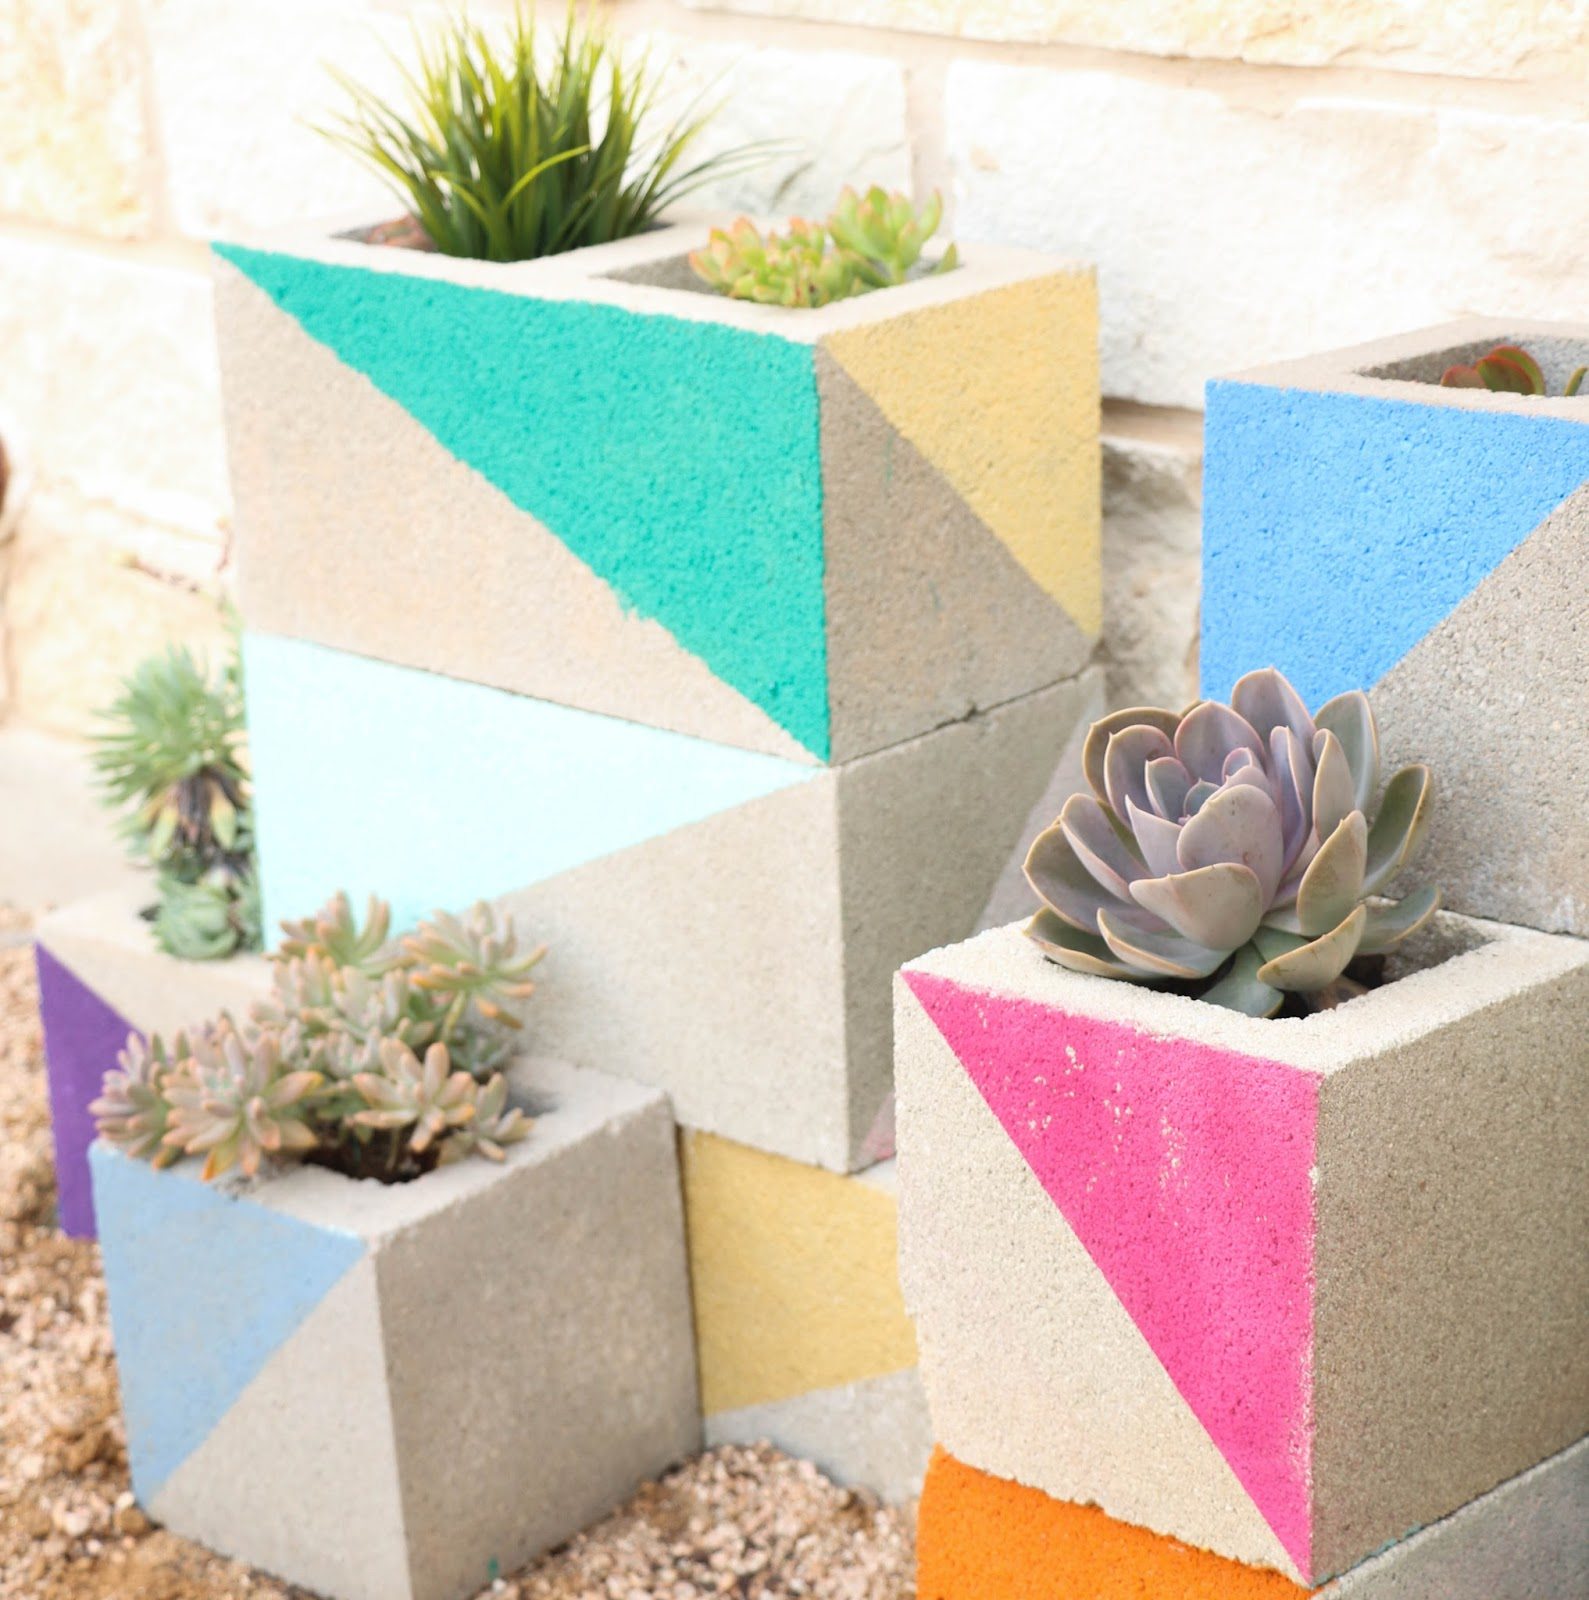 d%2Bcinderblock%2Bplanter%2B3 25 Stunning Planter Concrete Blocks Alternatives to Transform Your Backyard And That Are All Your Front Porch Needs Interior